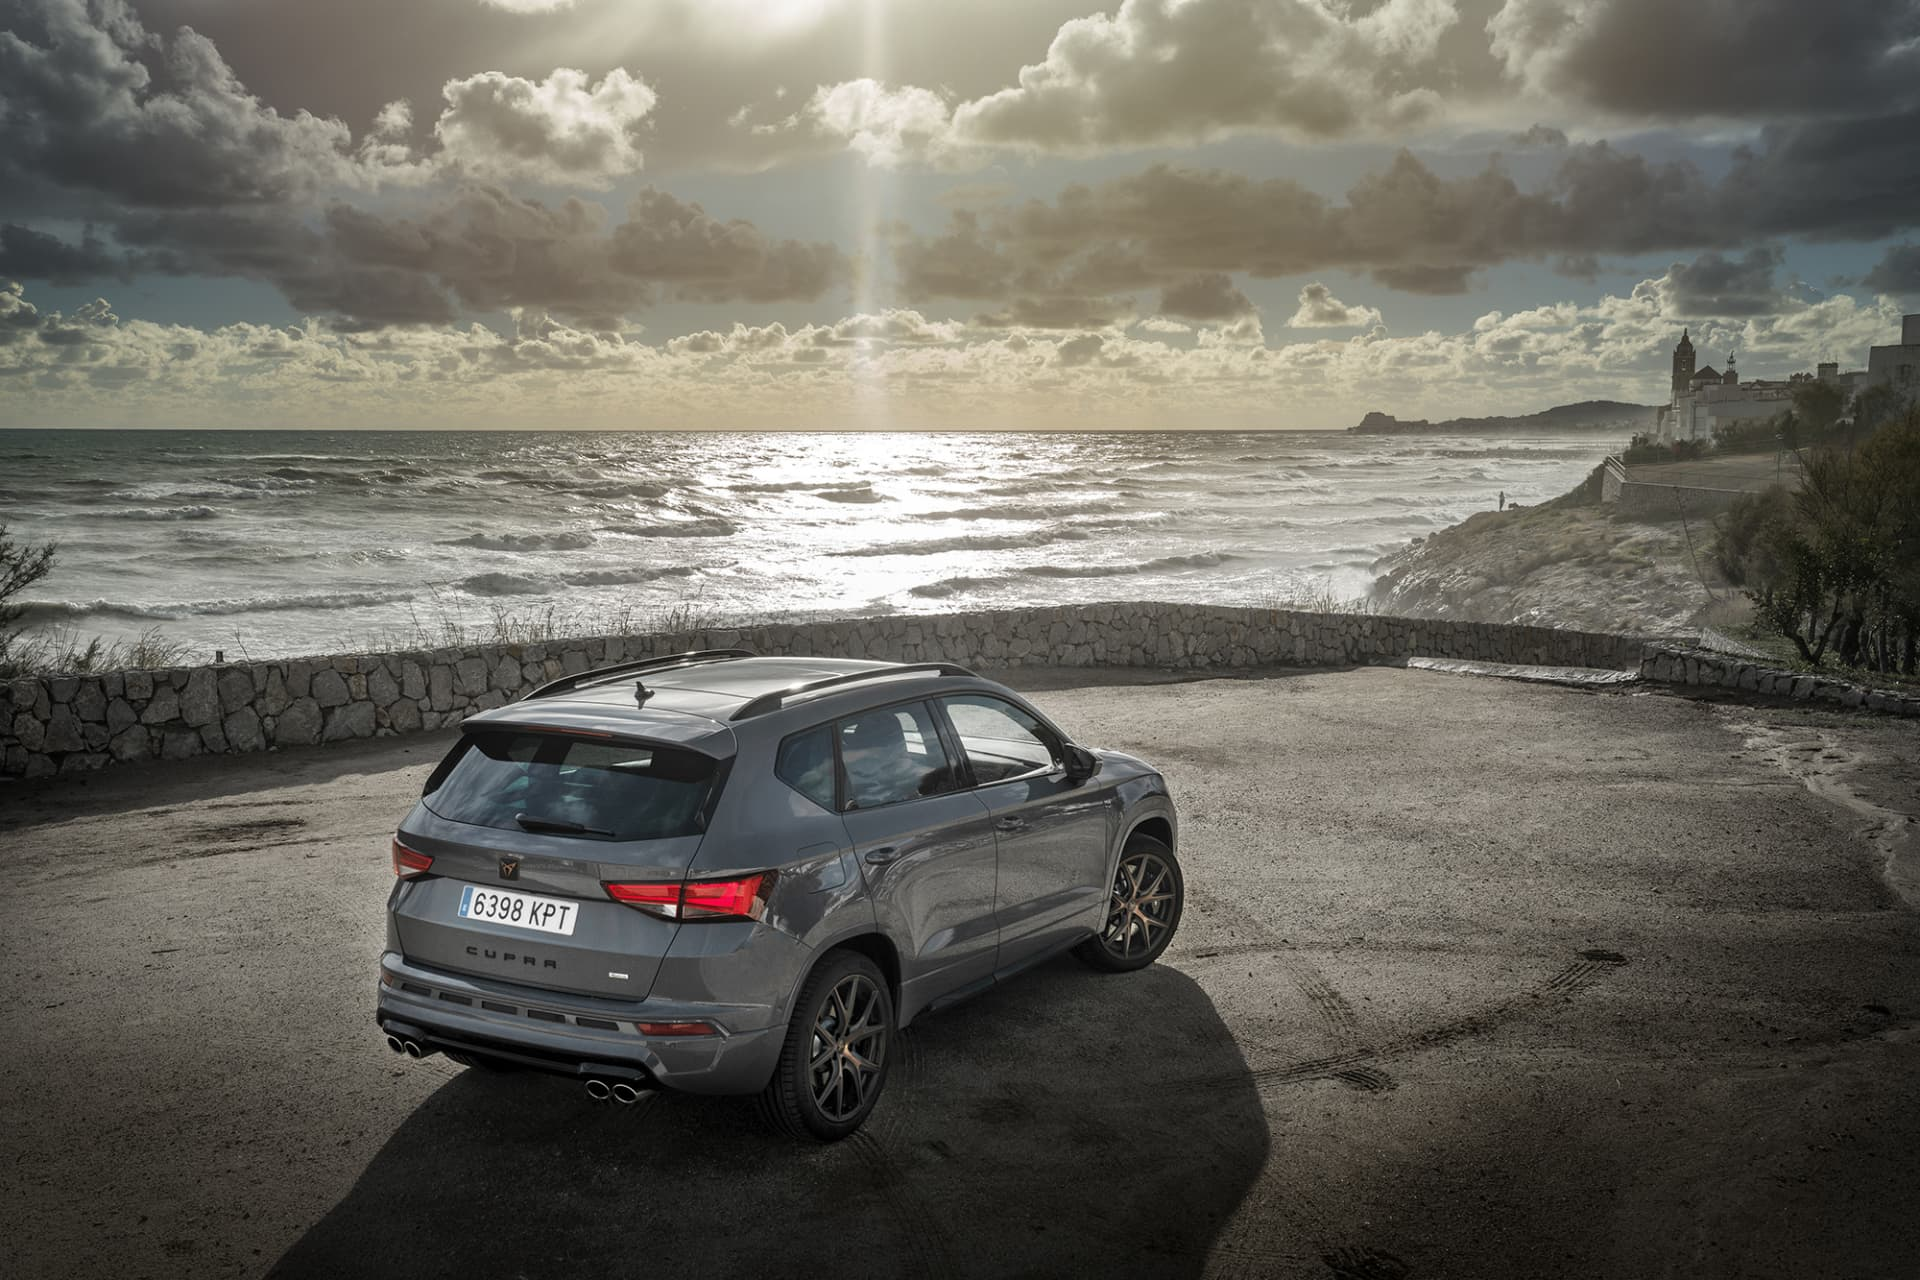 Just as the personality of the new Cupra Ateca, Sitges, south of Barcelona, offered temperamental weather with sunshine and hard winds.